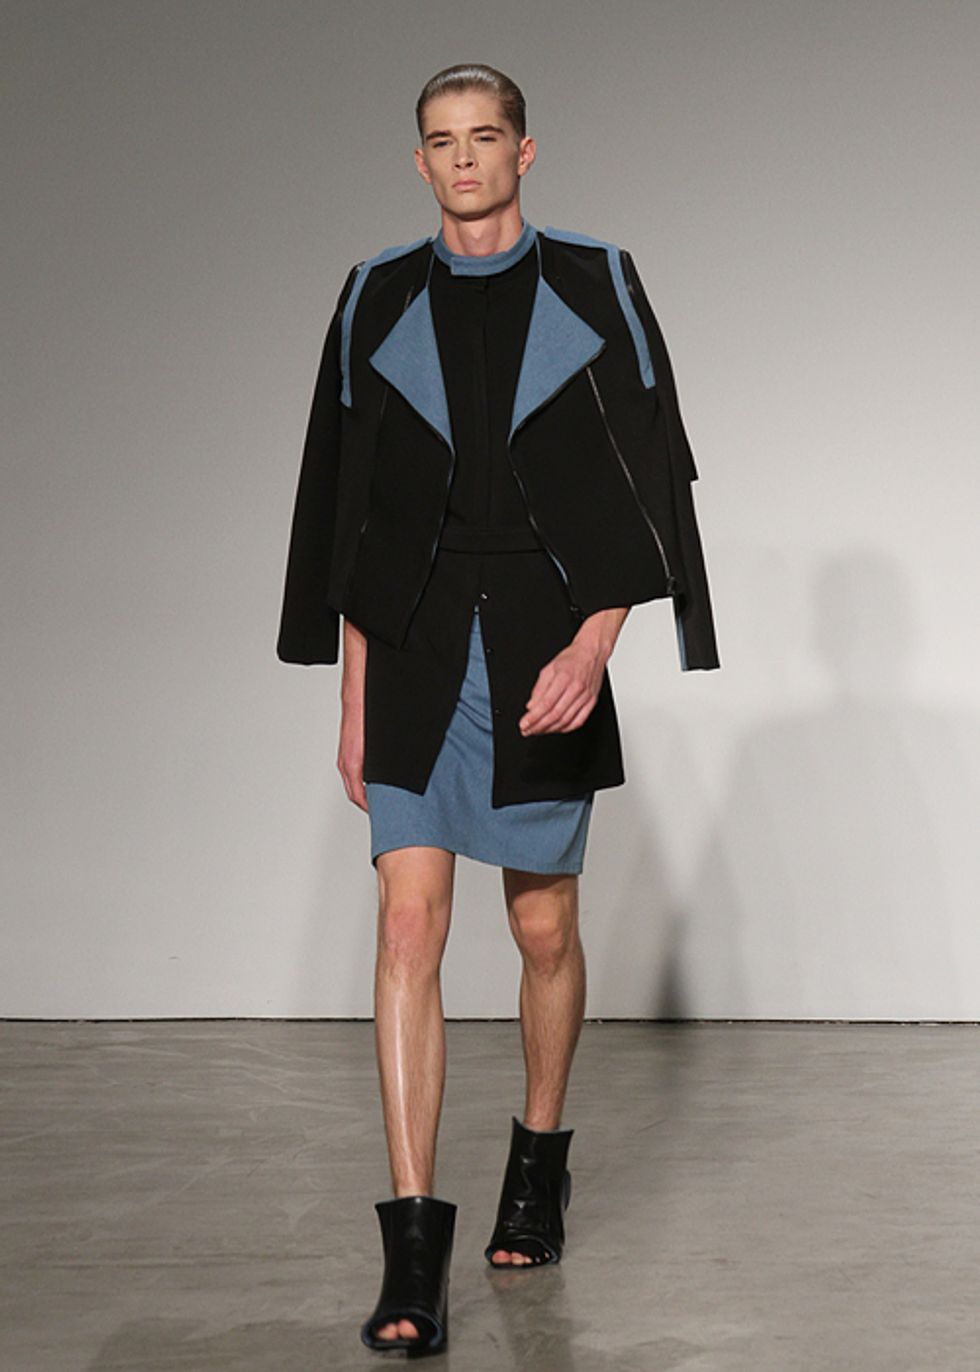 Getting A Little Color: Rad By Rad Hourani S/S '12